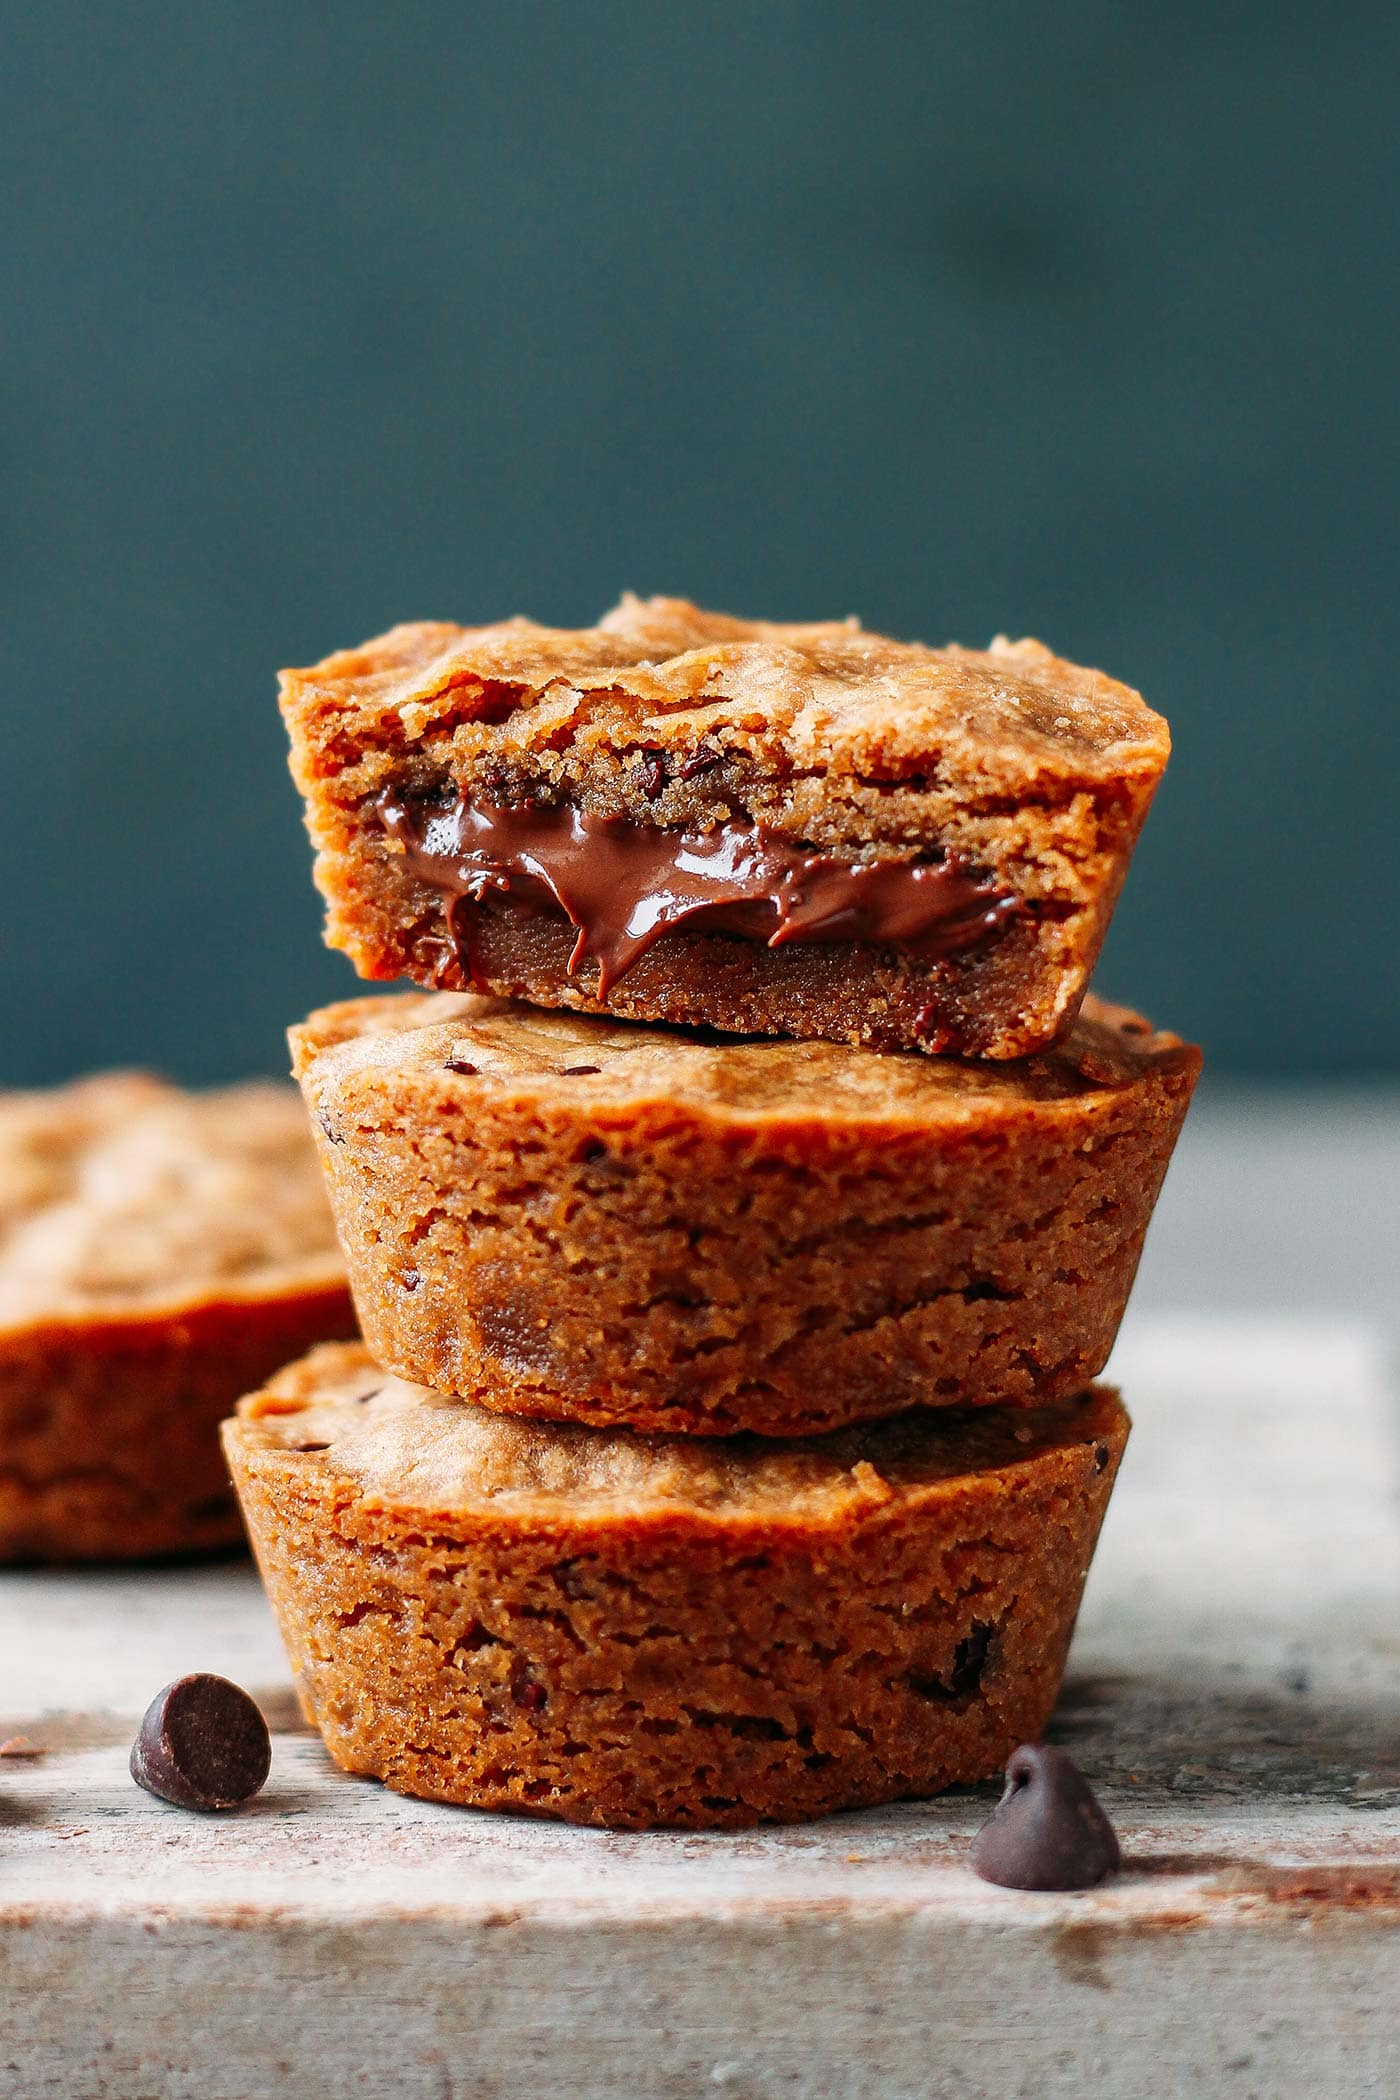 Nutella Stuffed Chocolate Chip Cookie Cups (Vegan + GF)